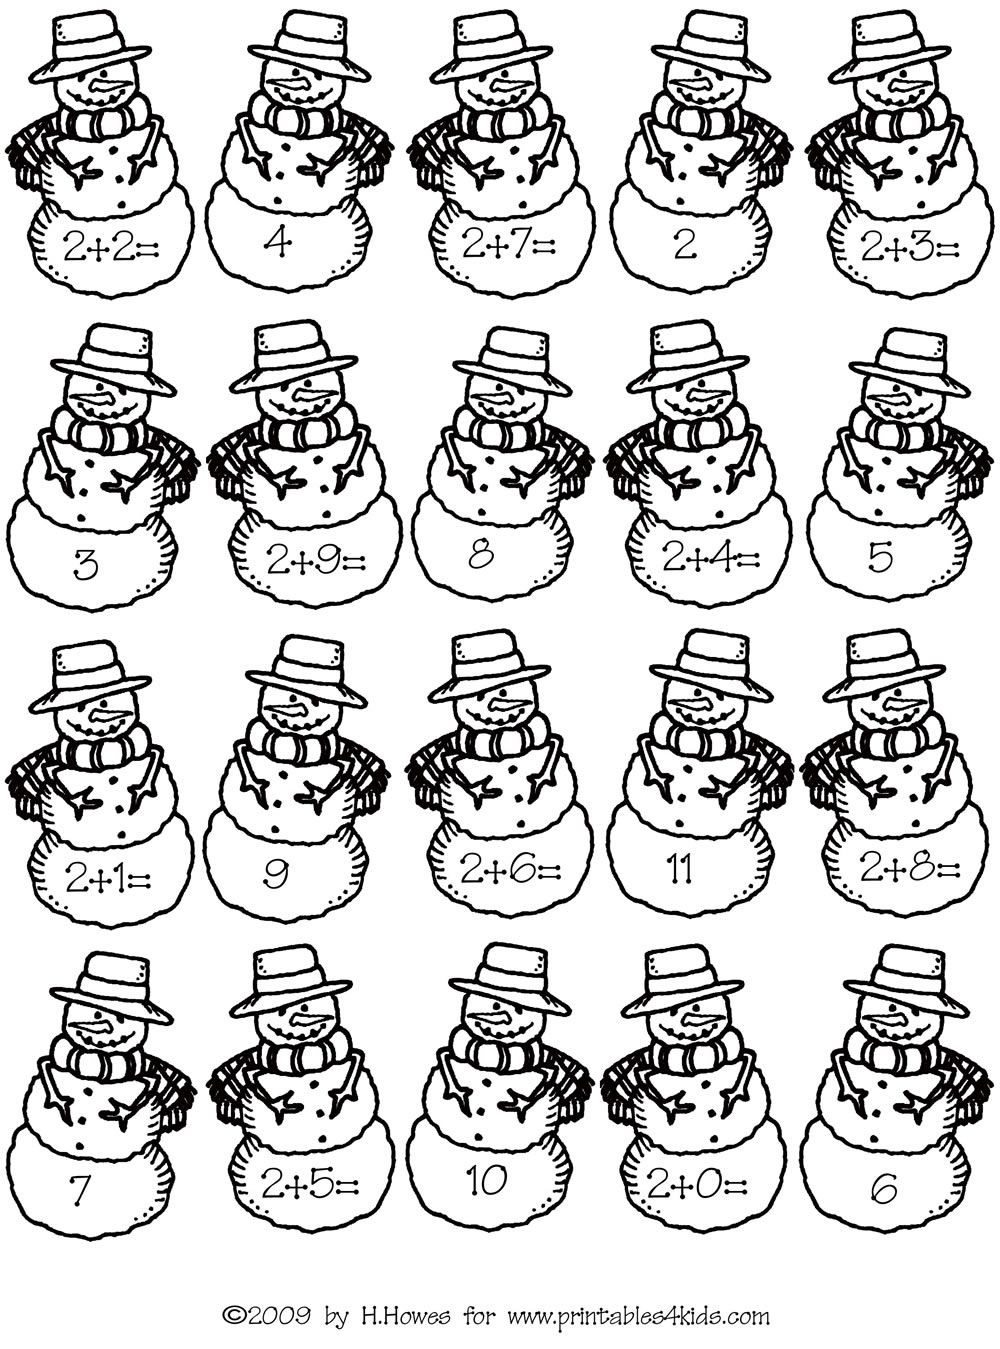 Snowman Math Worksheets Math Fact Families Addition by Twos